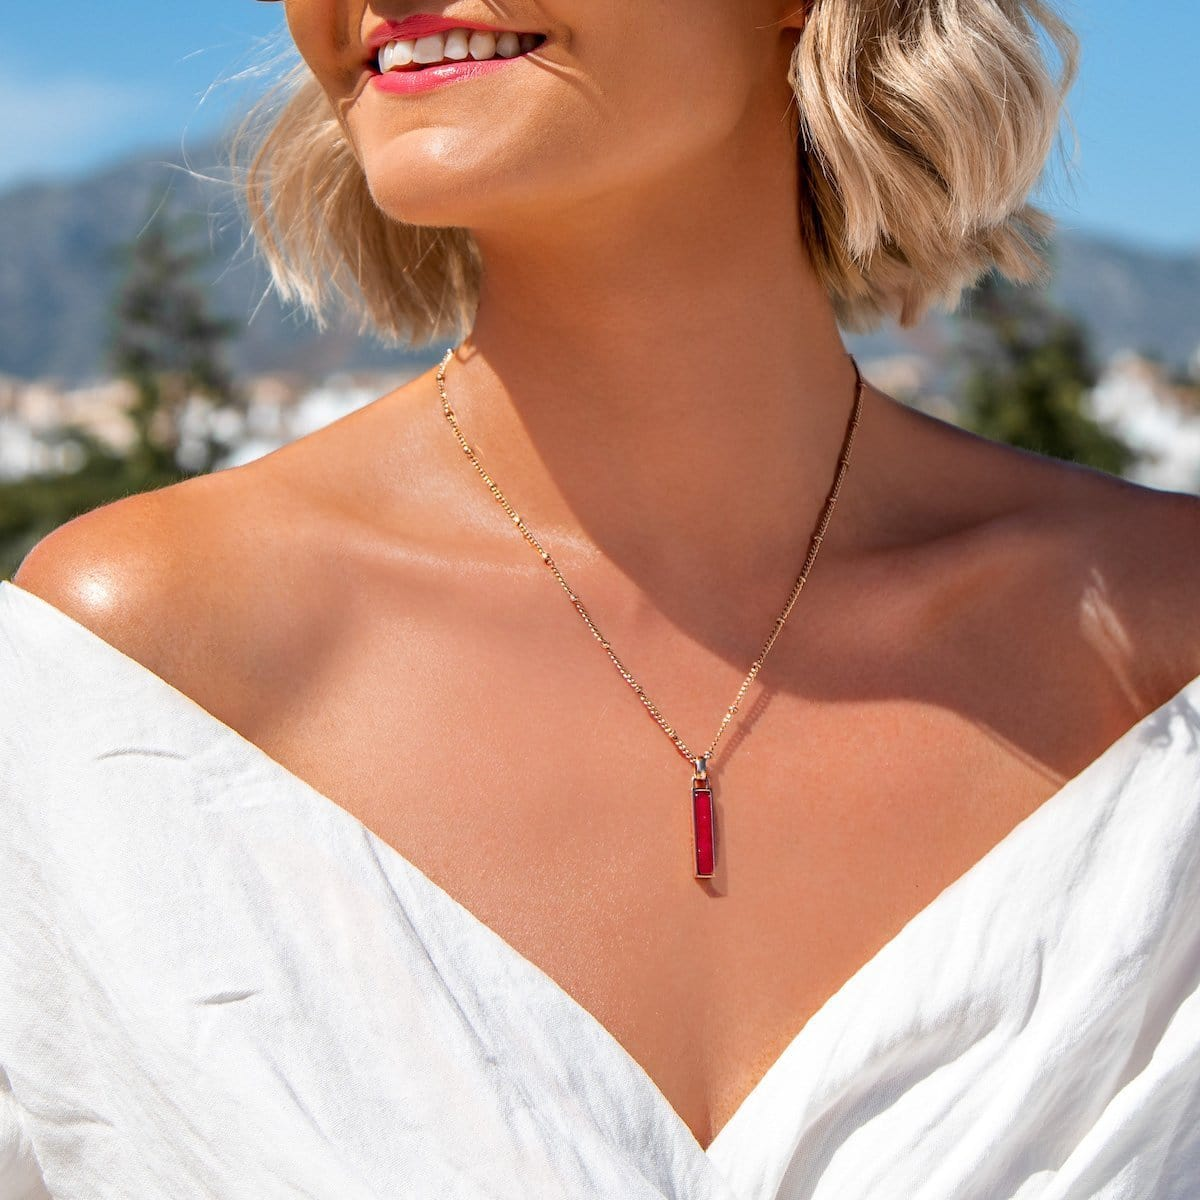 Small Lineare Bijou Charm Necklace (Pink Quartz/Rose Gold)